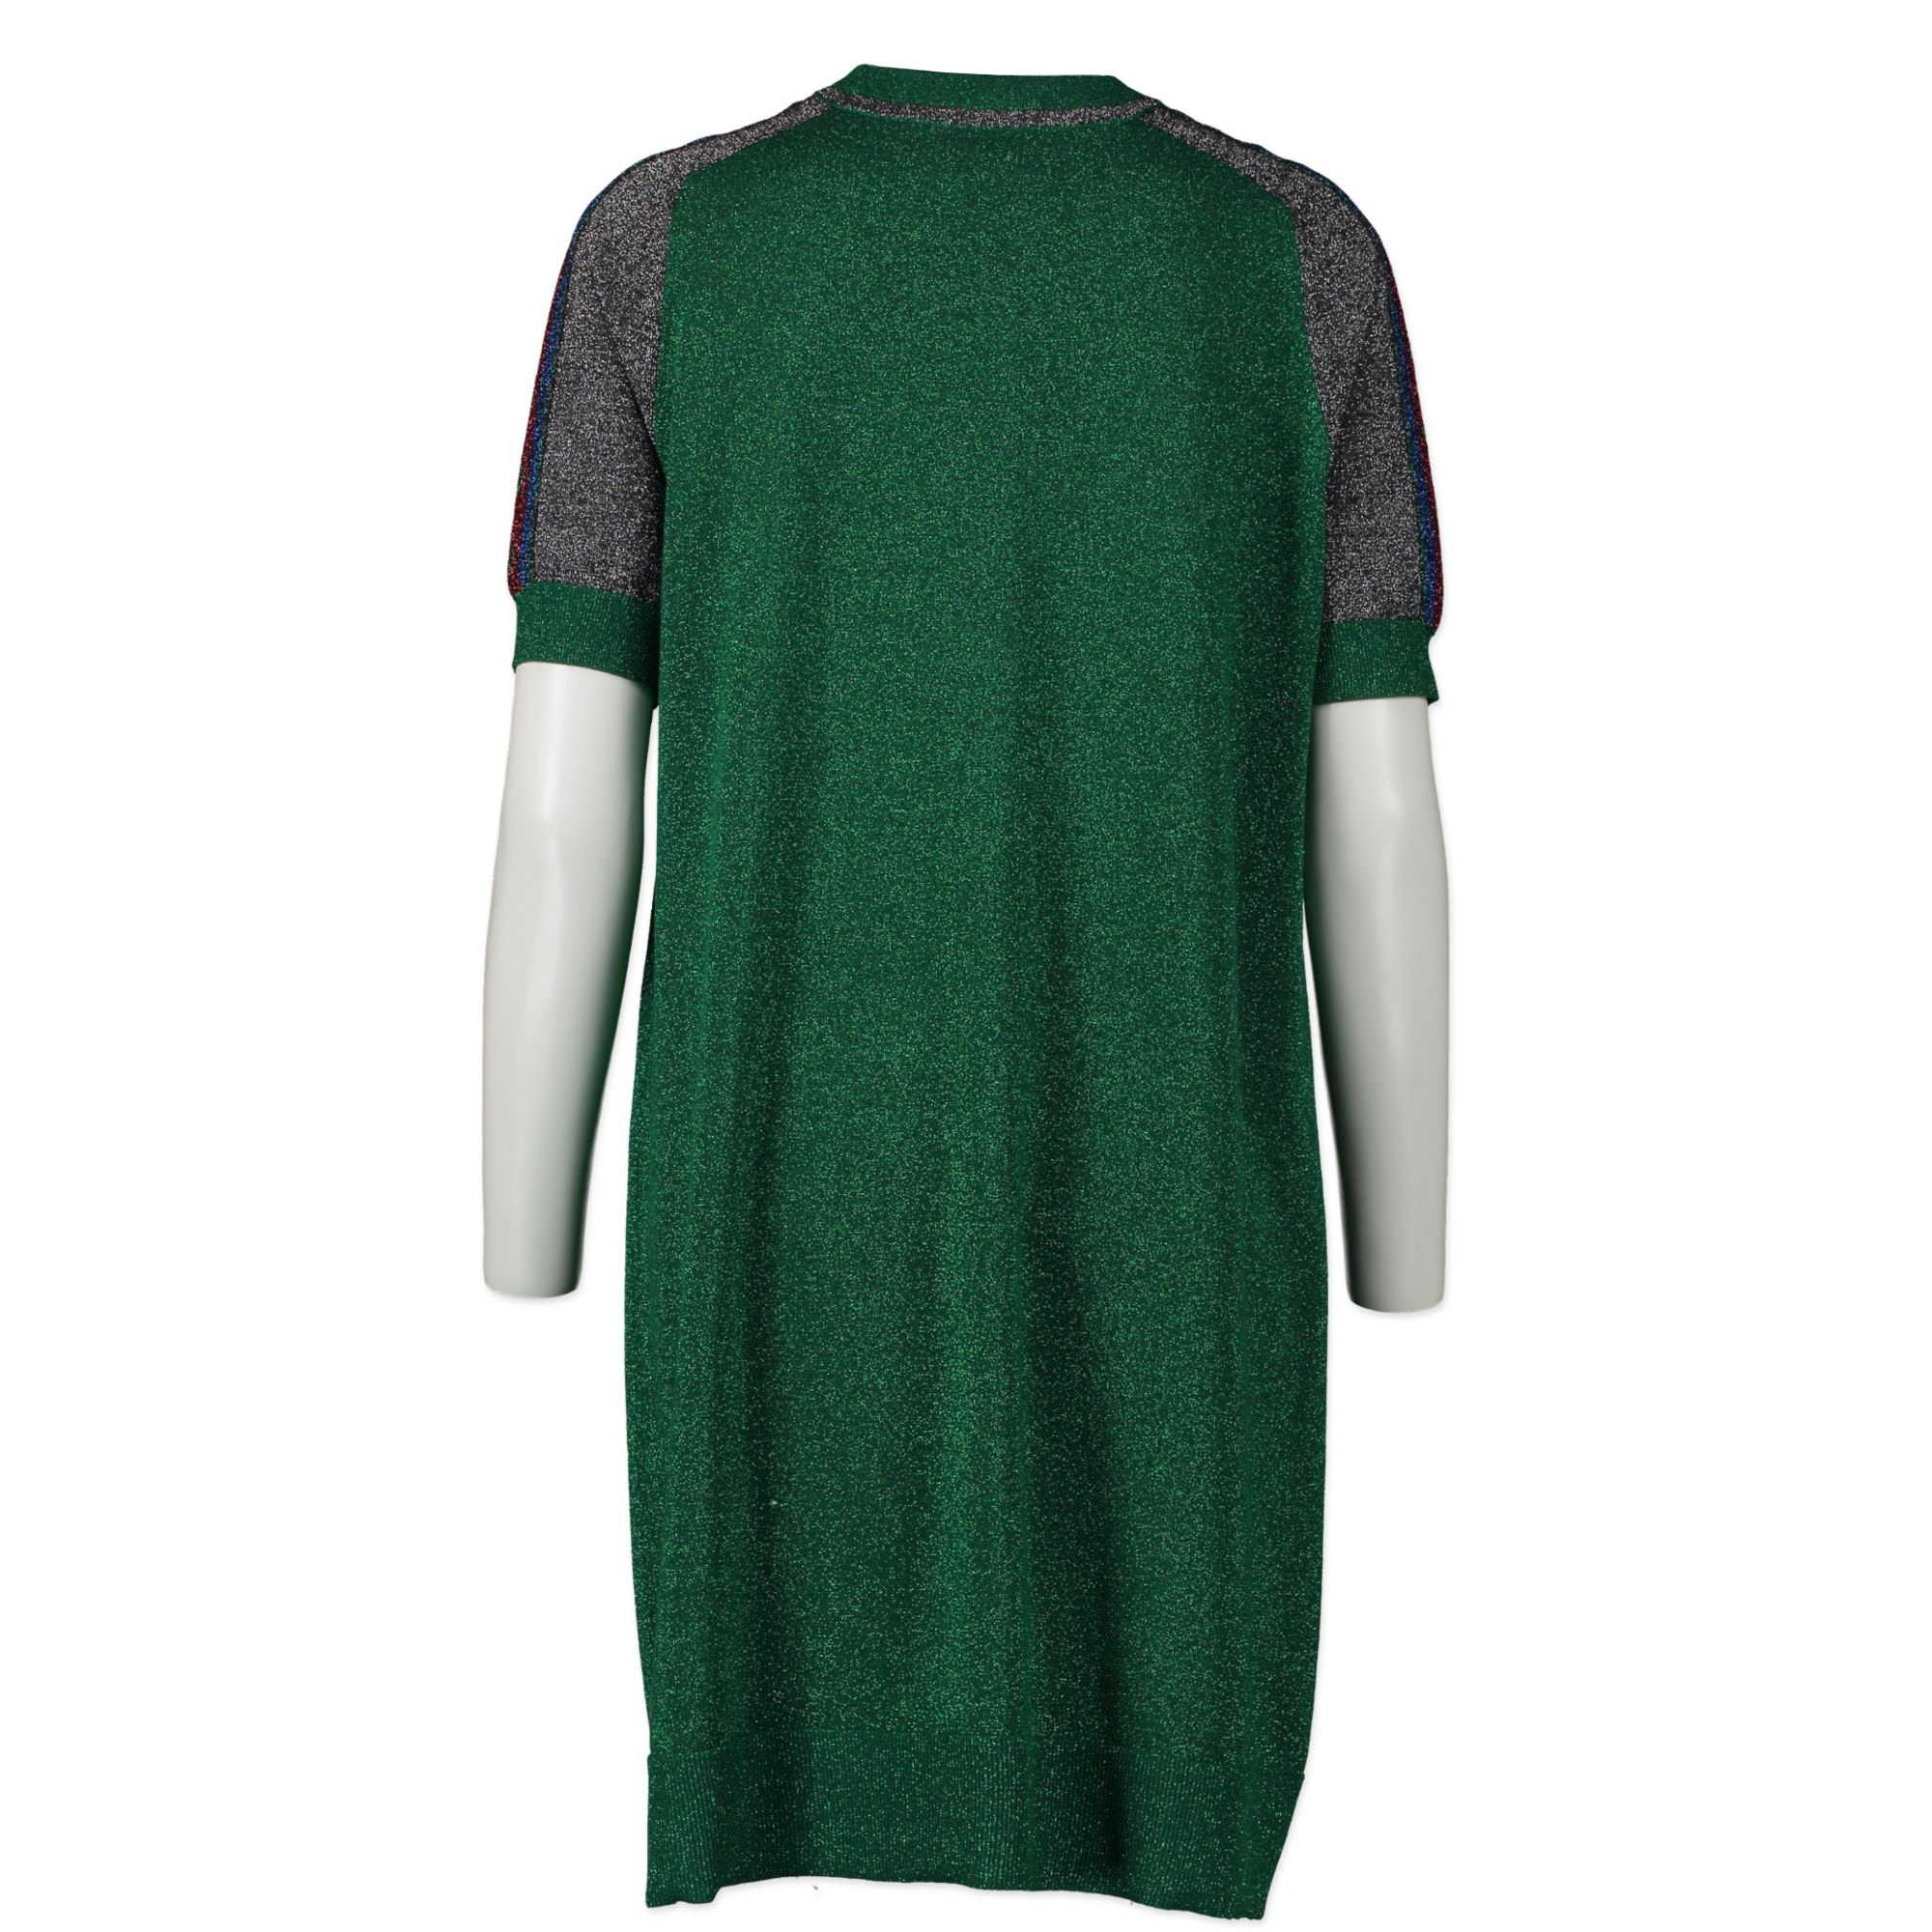 Gucci Green Glitter Sweater Dress - size S - kopen en verkopen